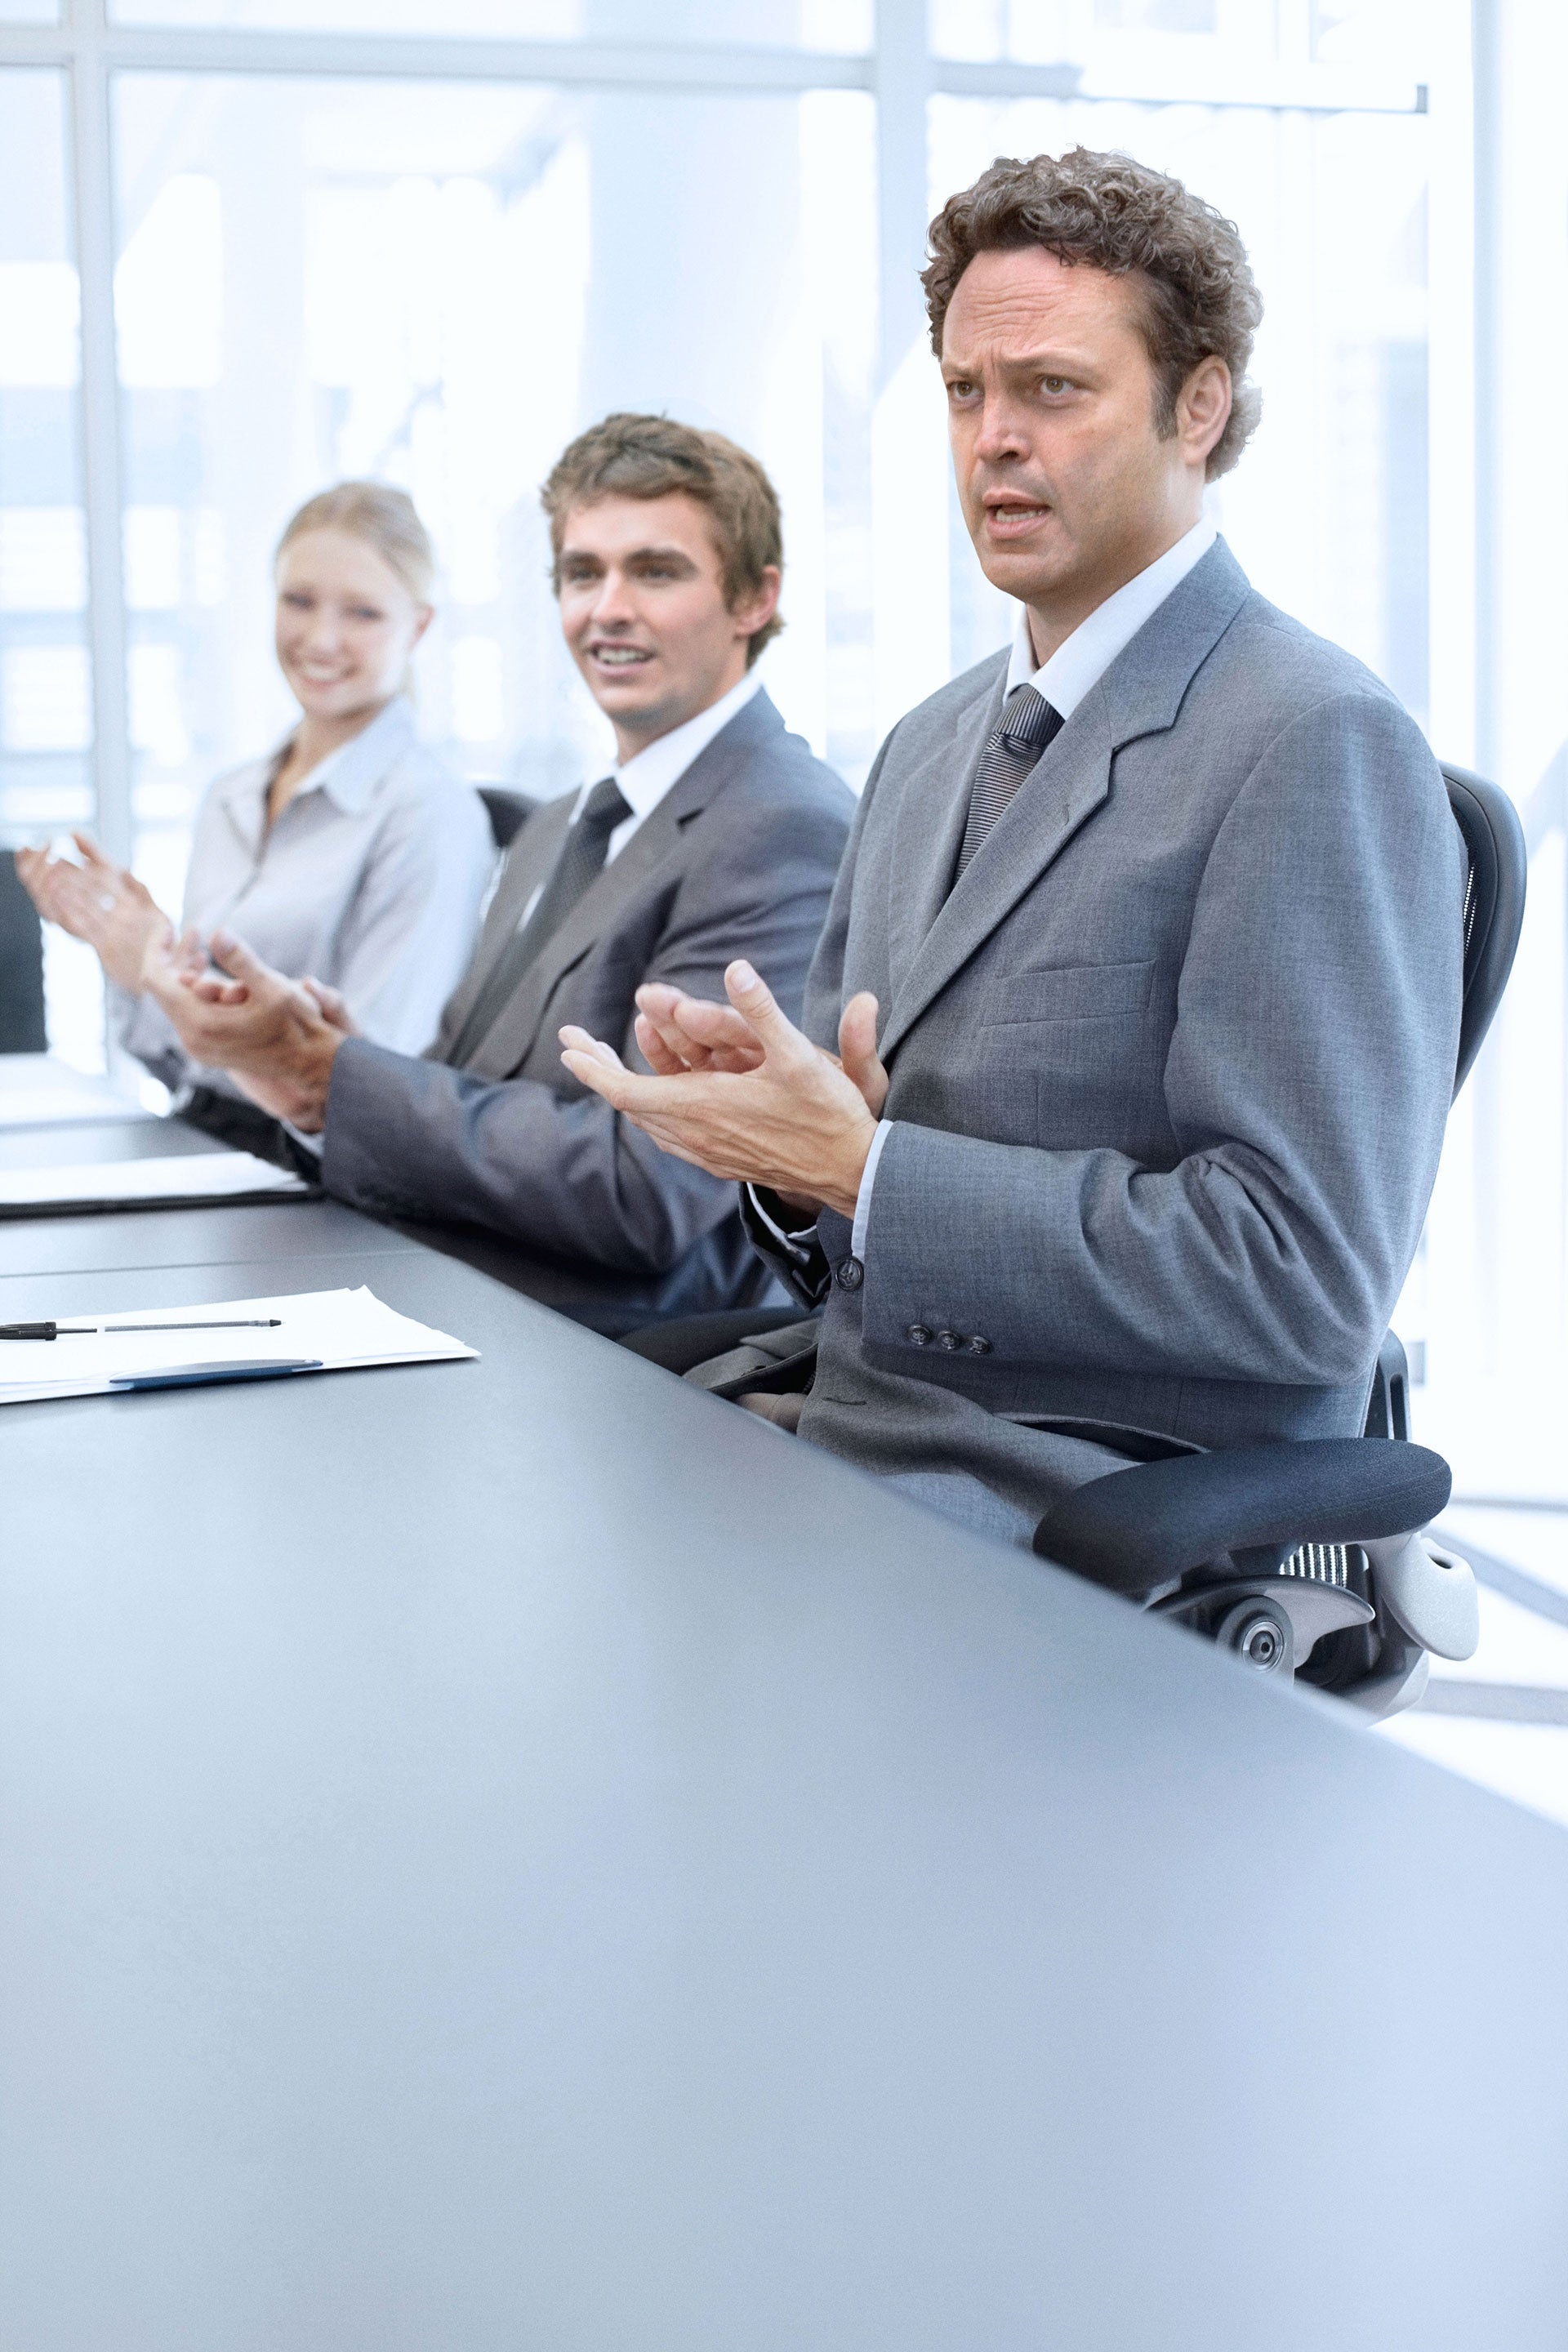 iStock-Unfinished-Business-3